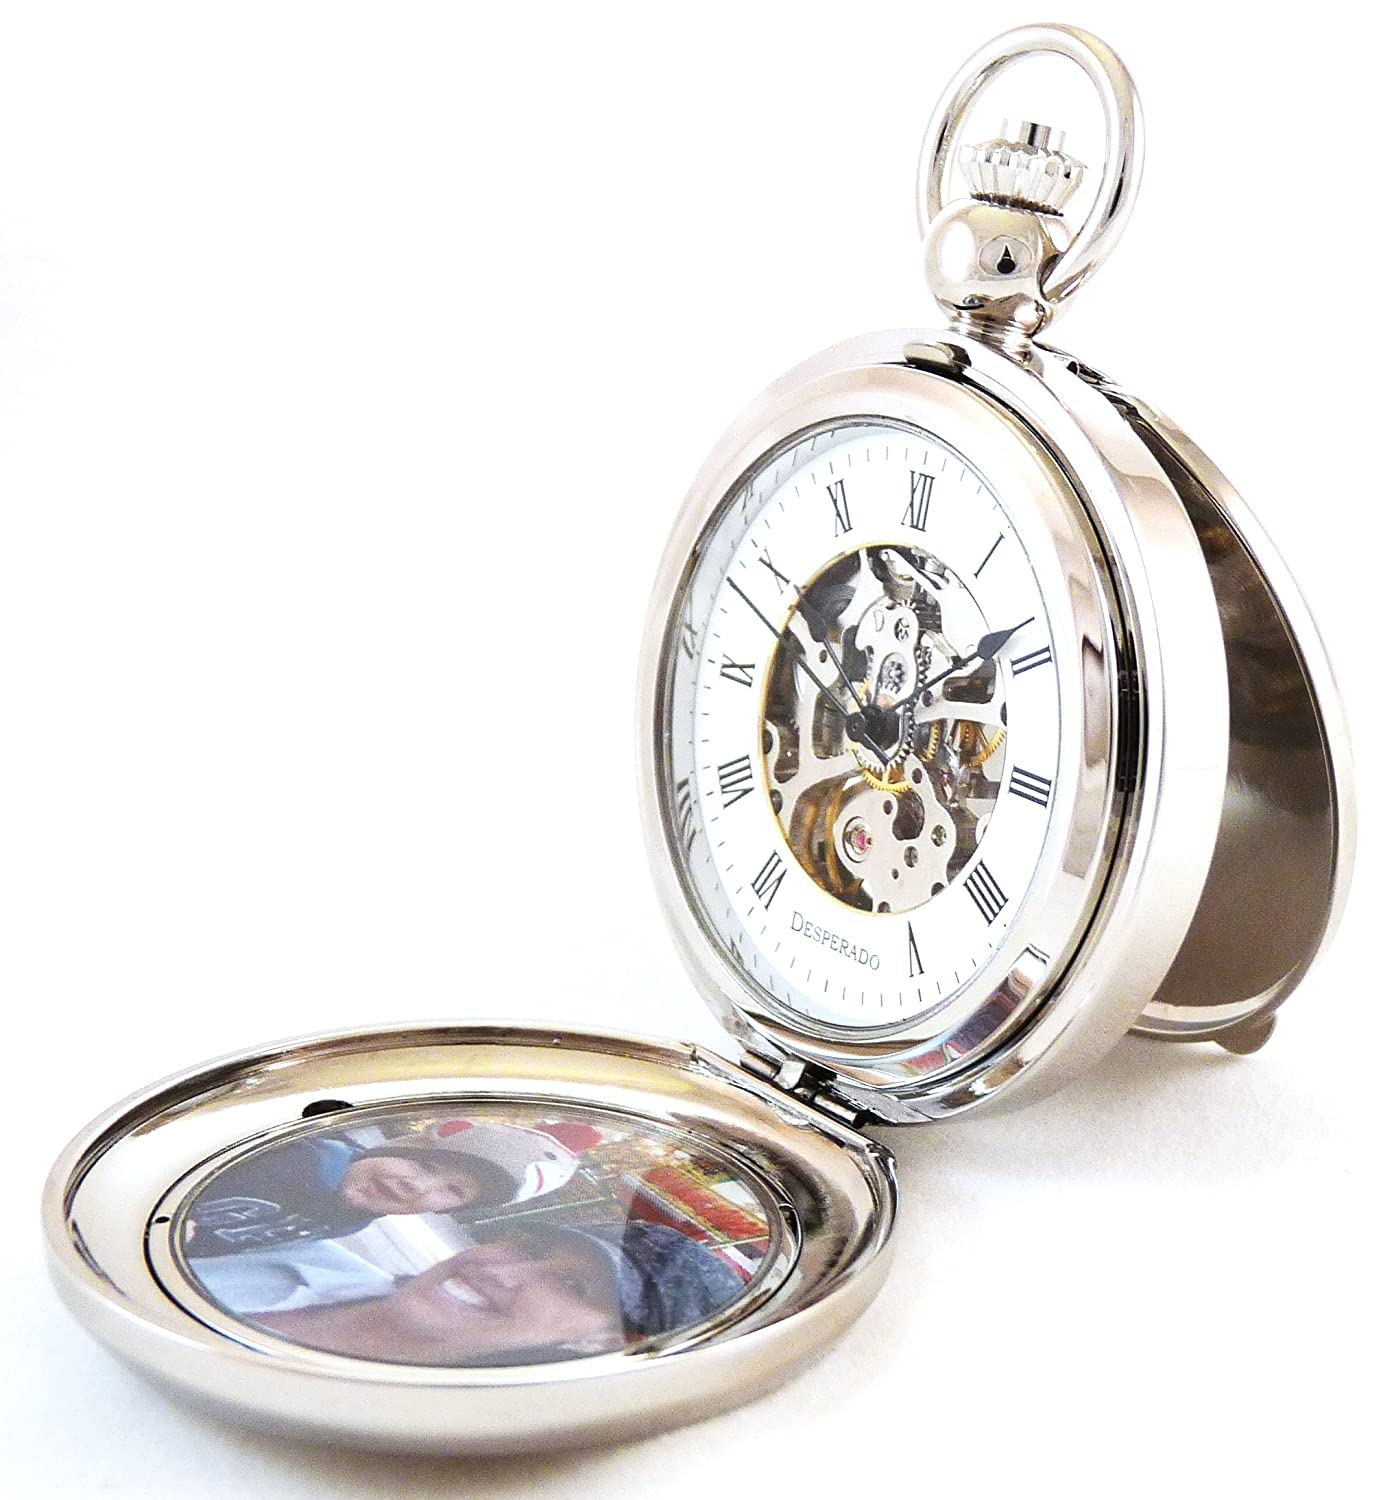 Amazon desperado riverside chrome photo insert picture amazon desperado riverside chrome photo insert picture frame pocket watch built in stand watches jeuxipadfo Image collections